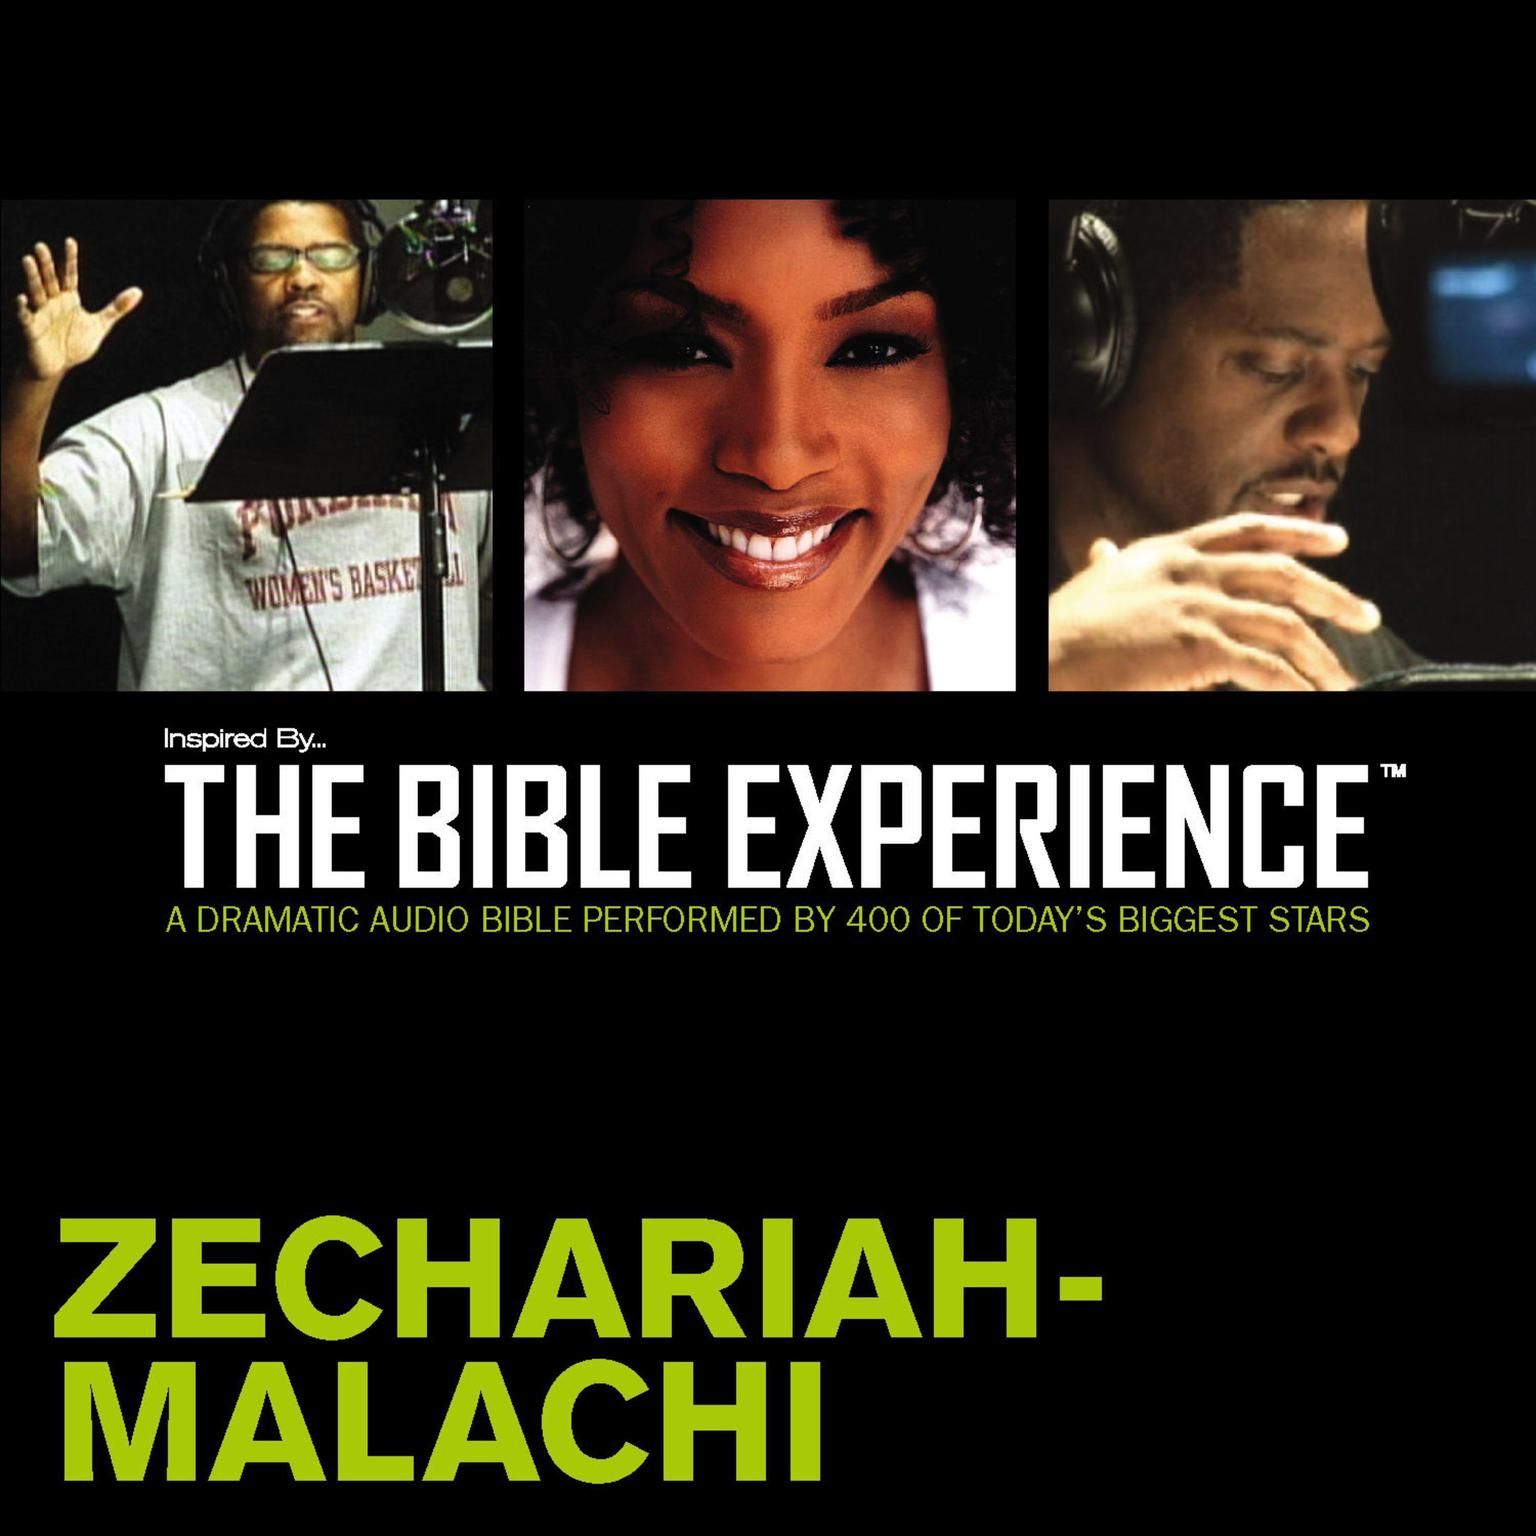 Printable TNIV, Inspired By … The Bible Experience: Zechariah - Malachi, Audio Download Audiobook Cover Art